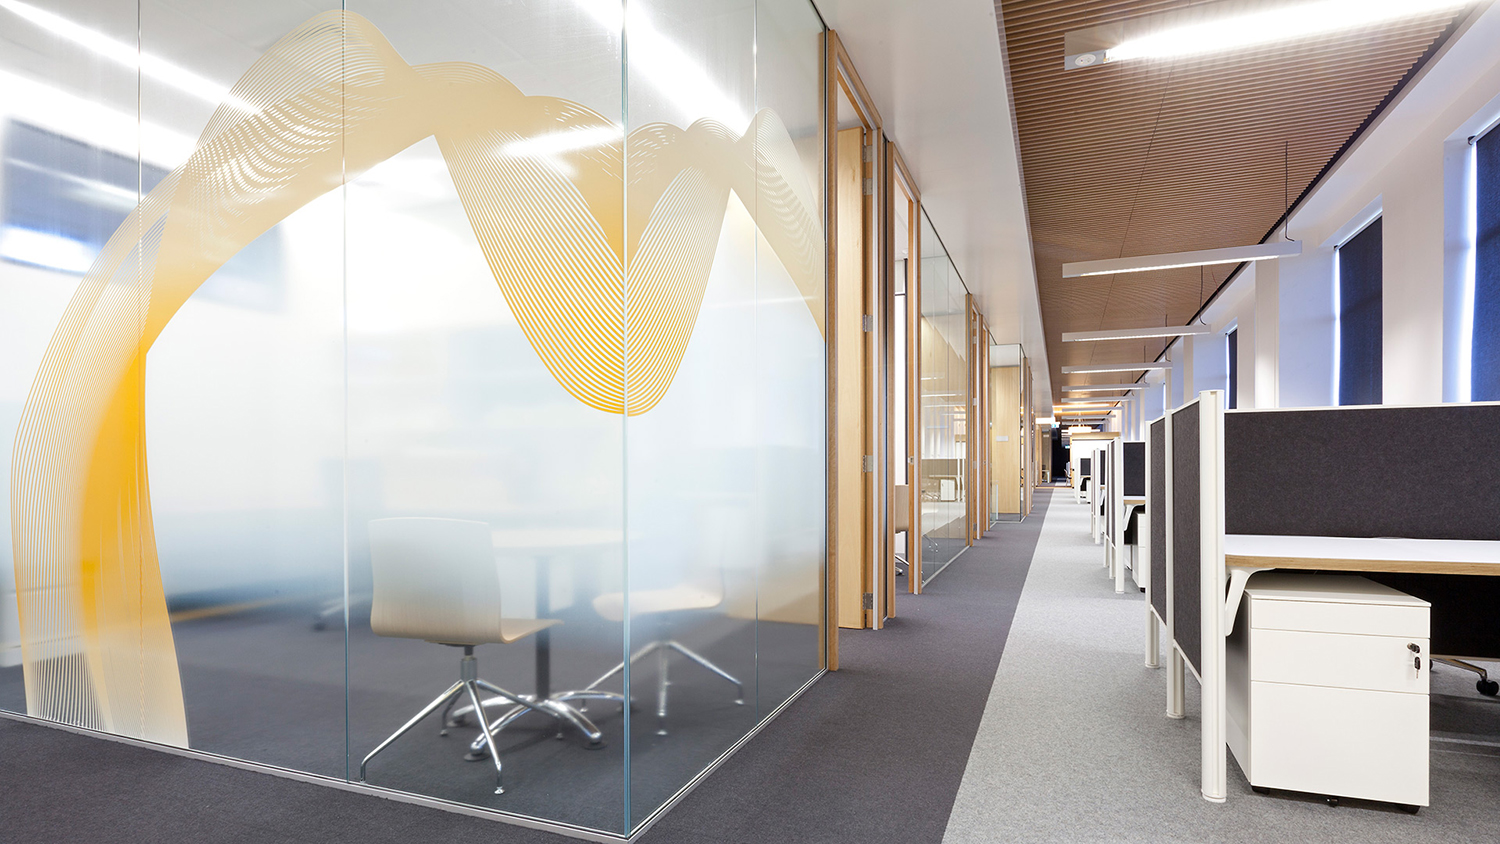 UNSW Astrophysics Work Environment – Meeting Room and Hallway – Gardner Wetherill GW 5